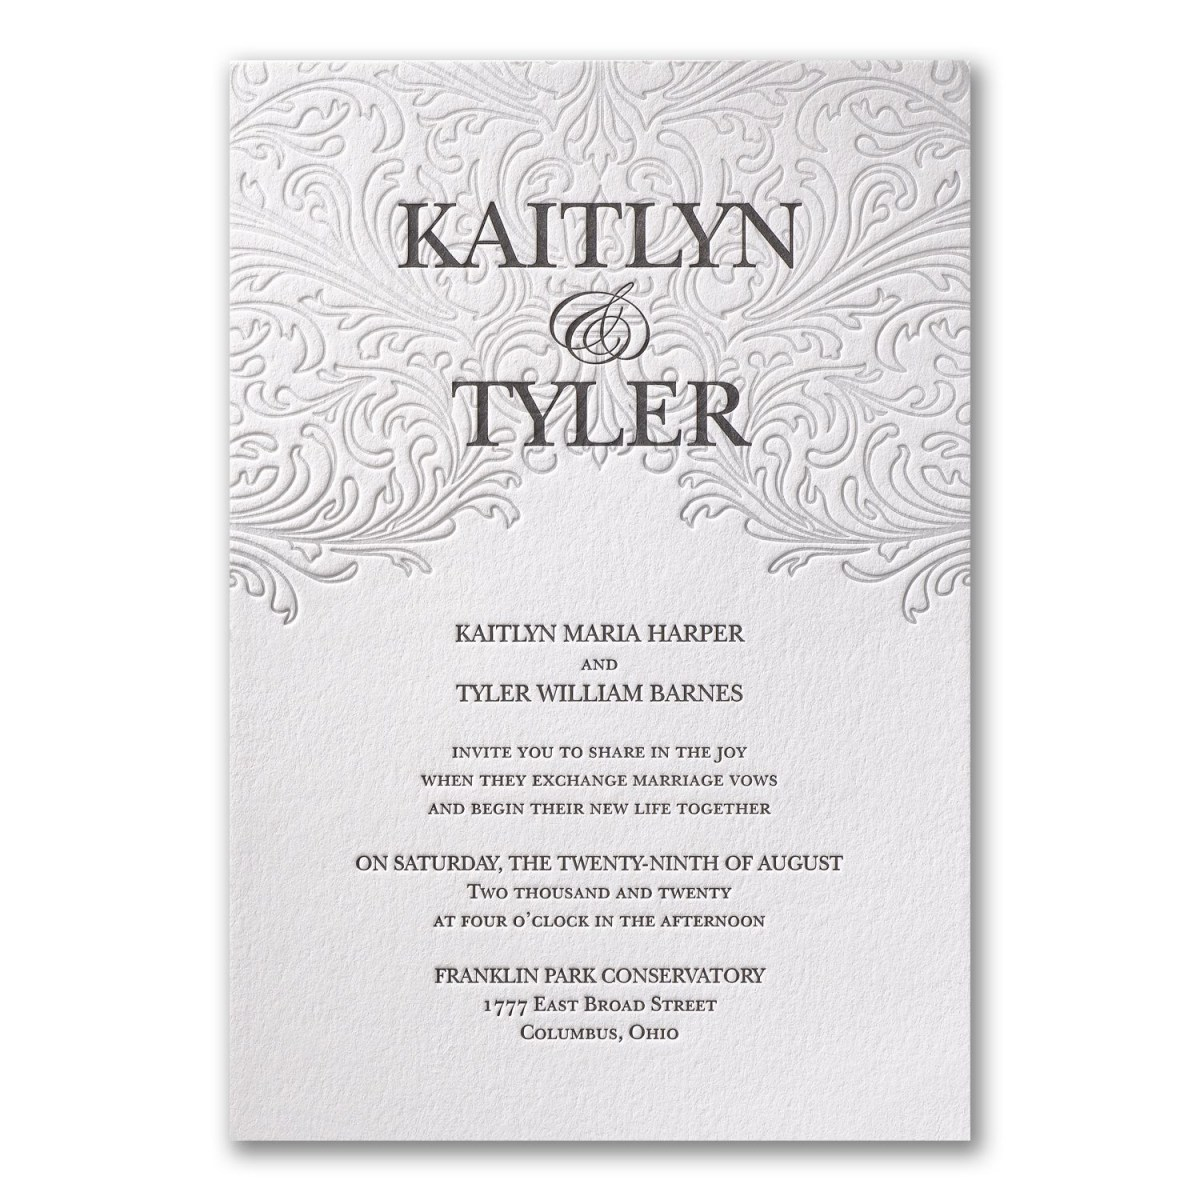 Carlson Wedding Invitations Invitations Carlson Crafts Wedding Invitations Fresh Craft